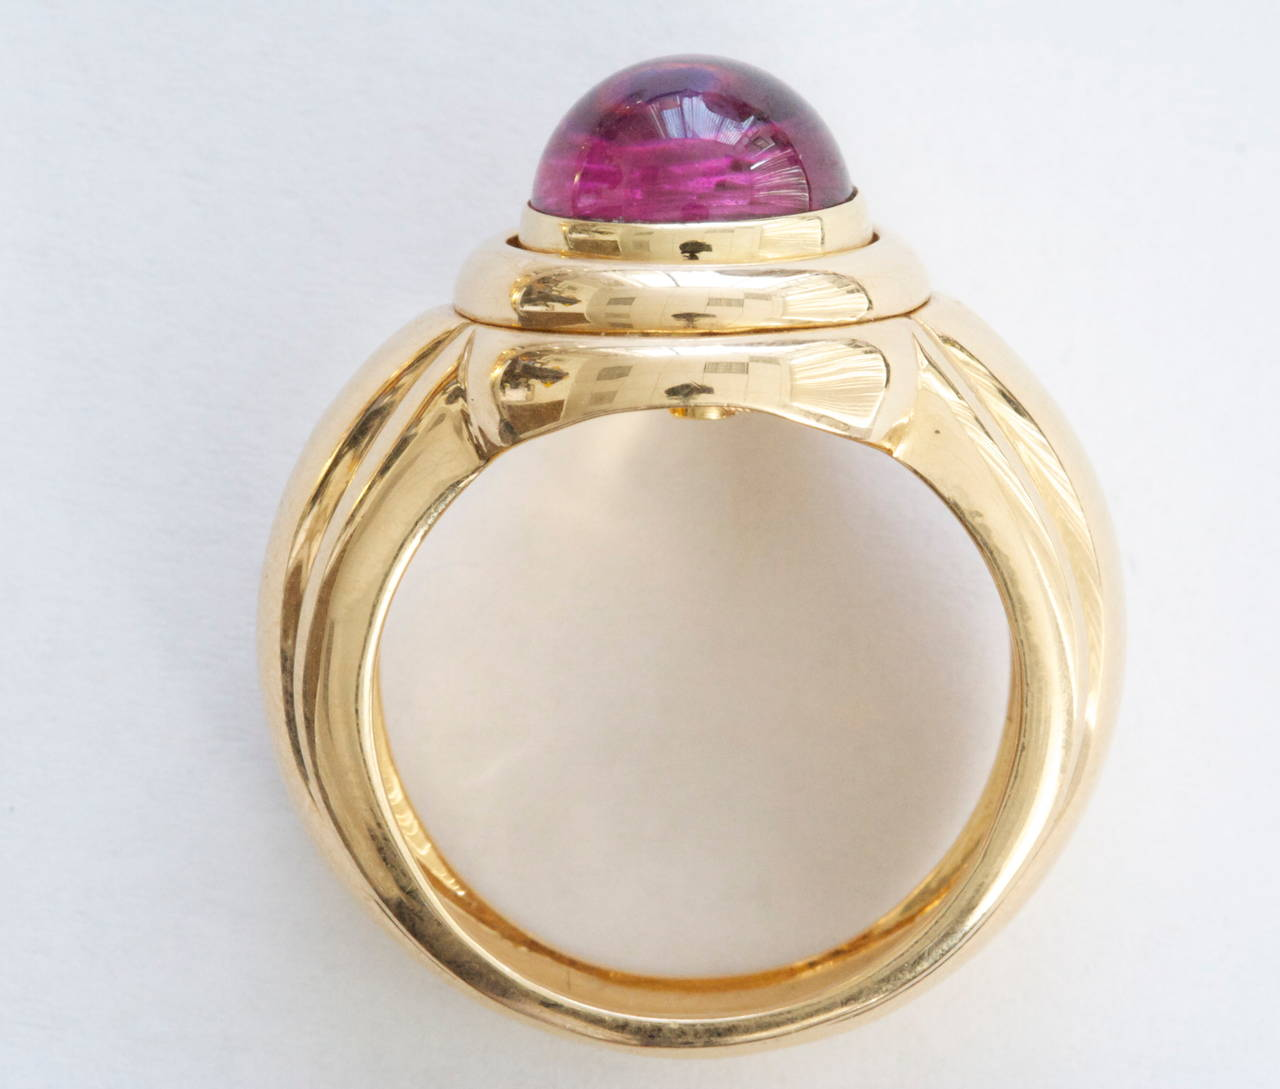 piaget tourmaline gold interchangeable ring at 1stdibs